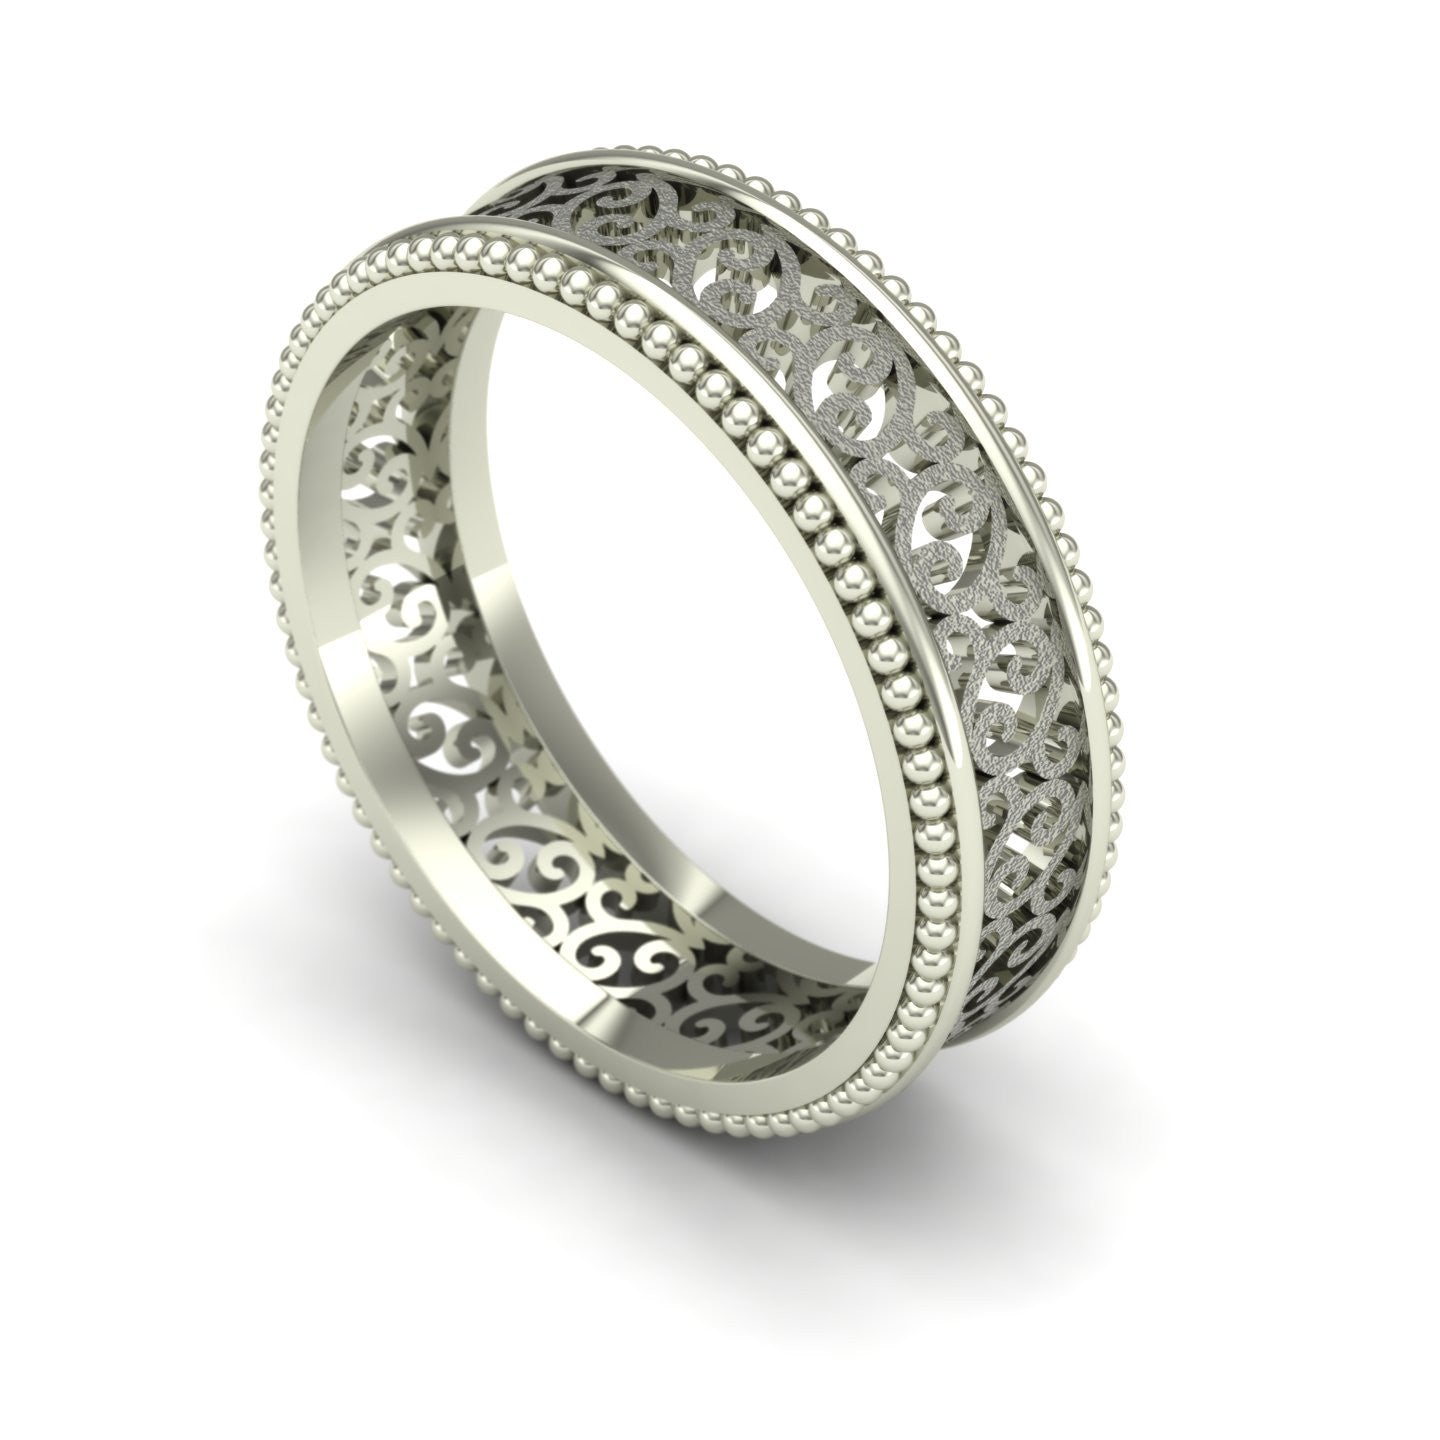 Sandblasted Scroll Filigree Wedding Band in 14k White Gold